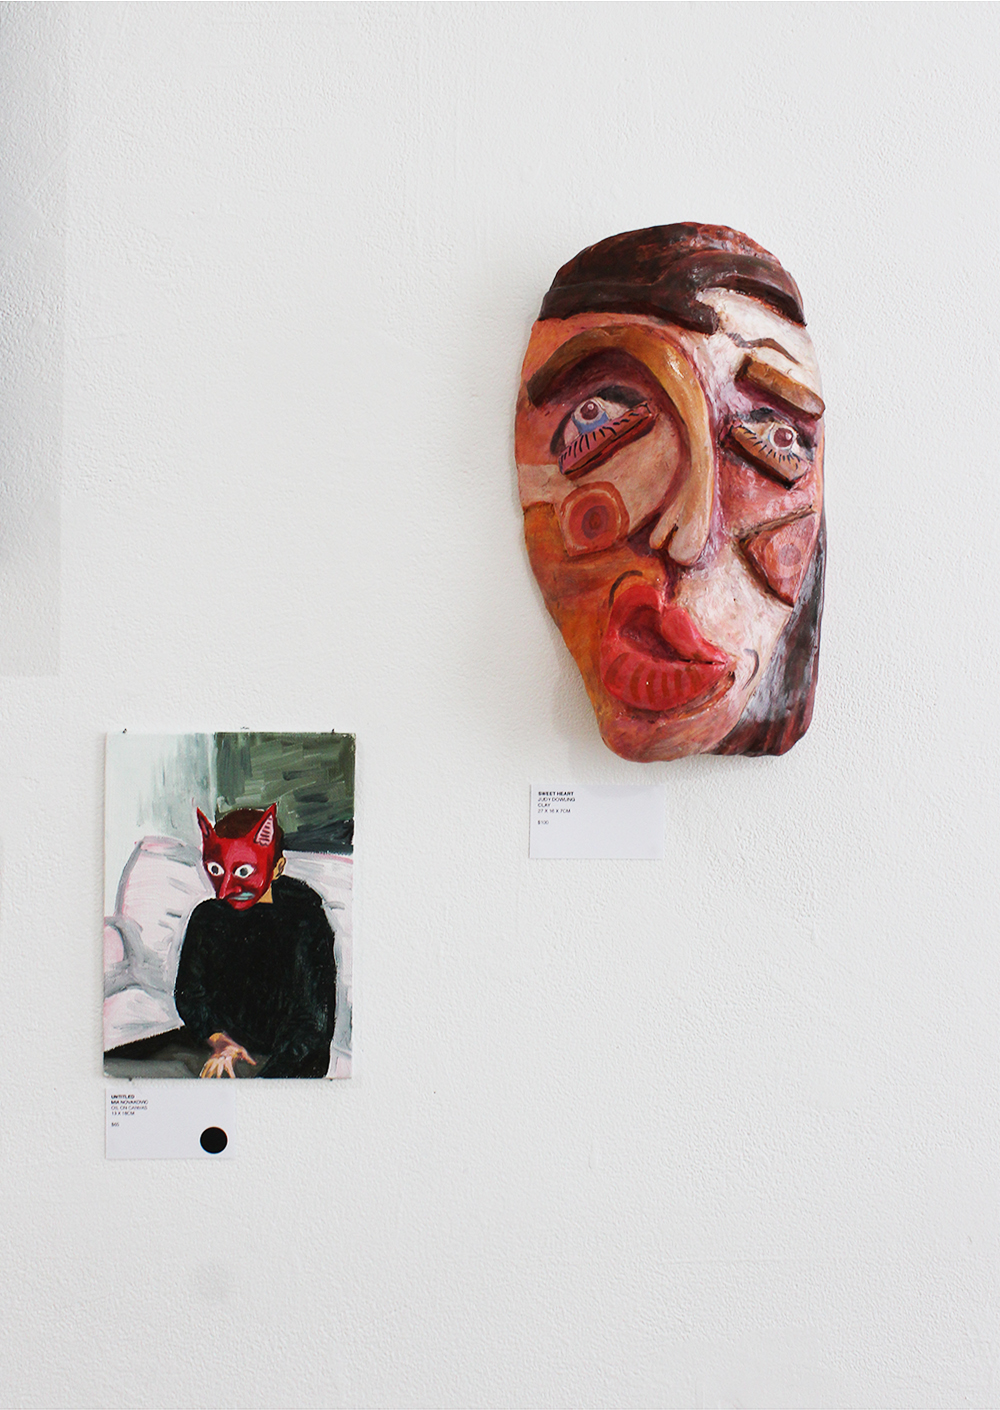 From left to right: Mia Novakovic,  Untitled , oil on canvas board, 13x18cm; Judy Dowling,  Sweet Heart,  clay, 27x16x7cm.